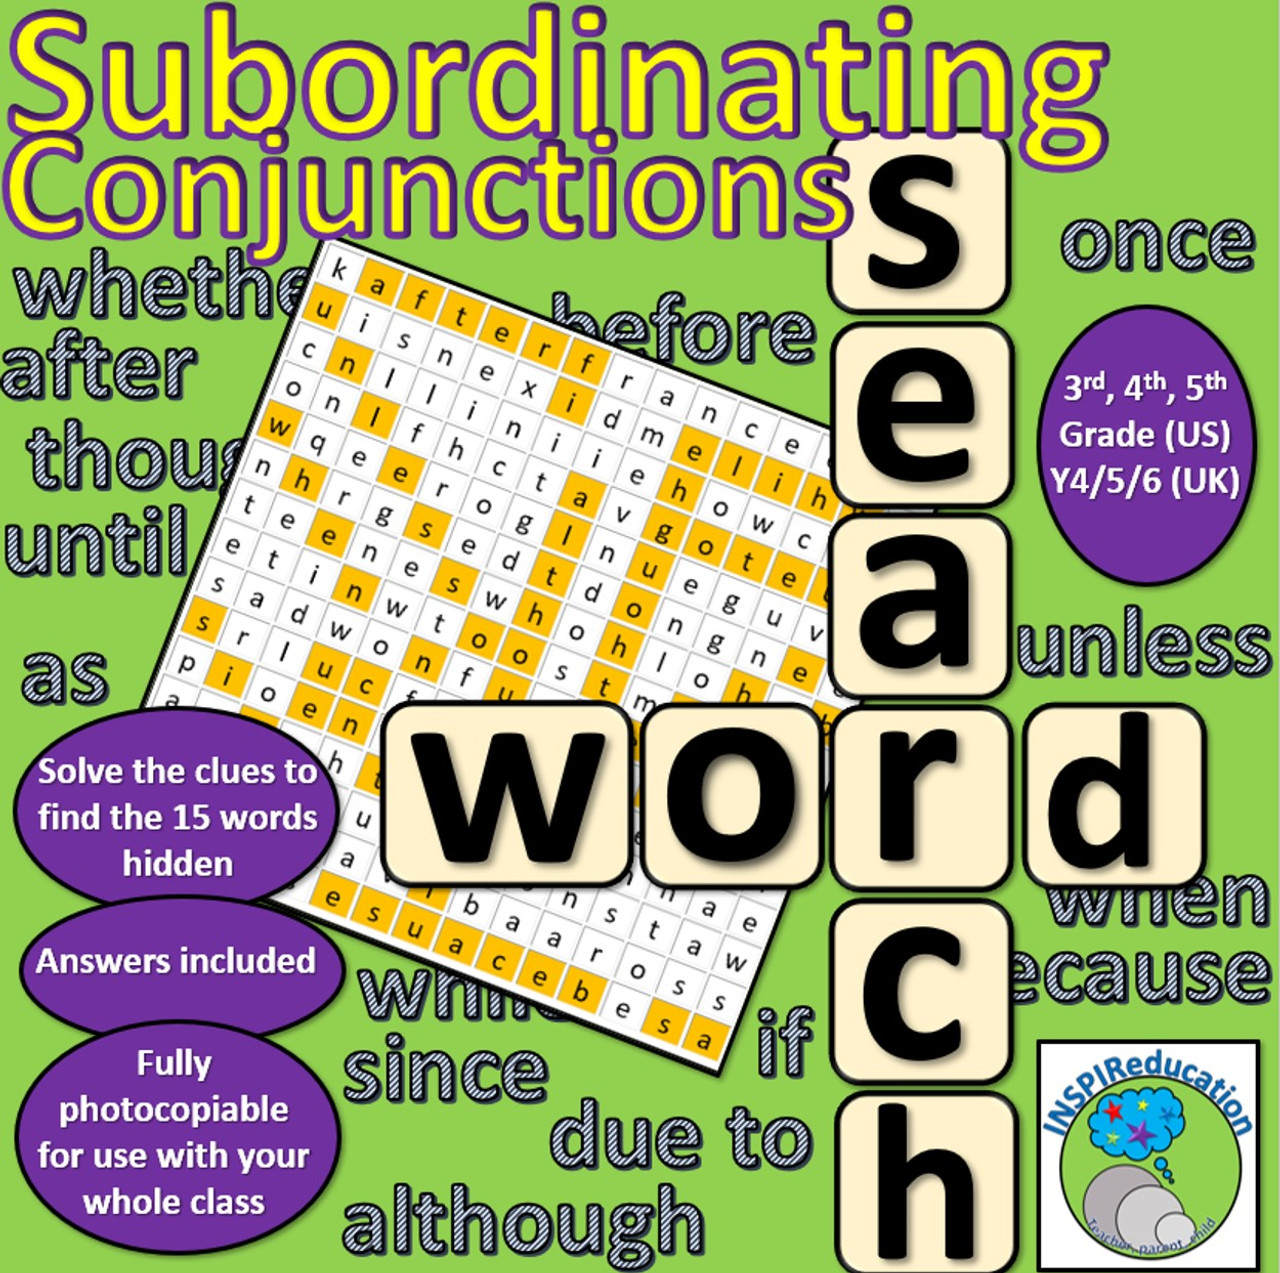 medium resolution of Subordinating Conjunctions Wordsearch (Find all 15 conjunctions) - Amped Up  Learning